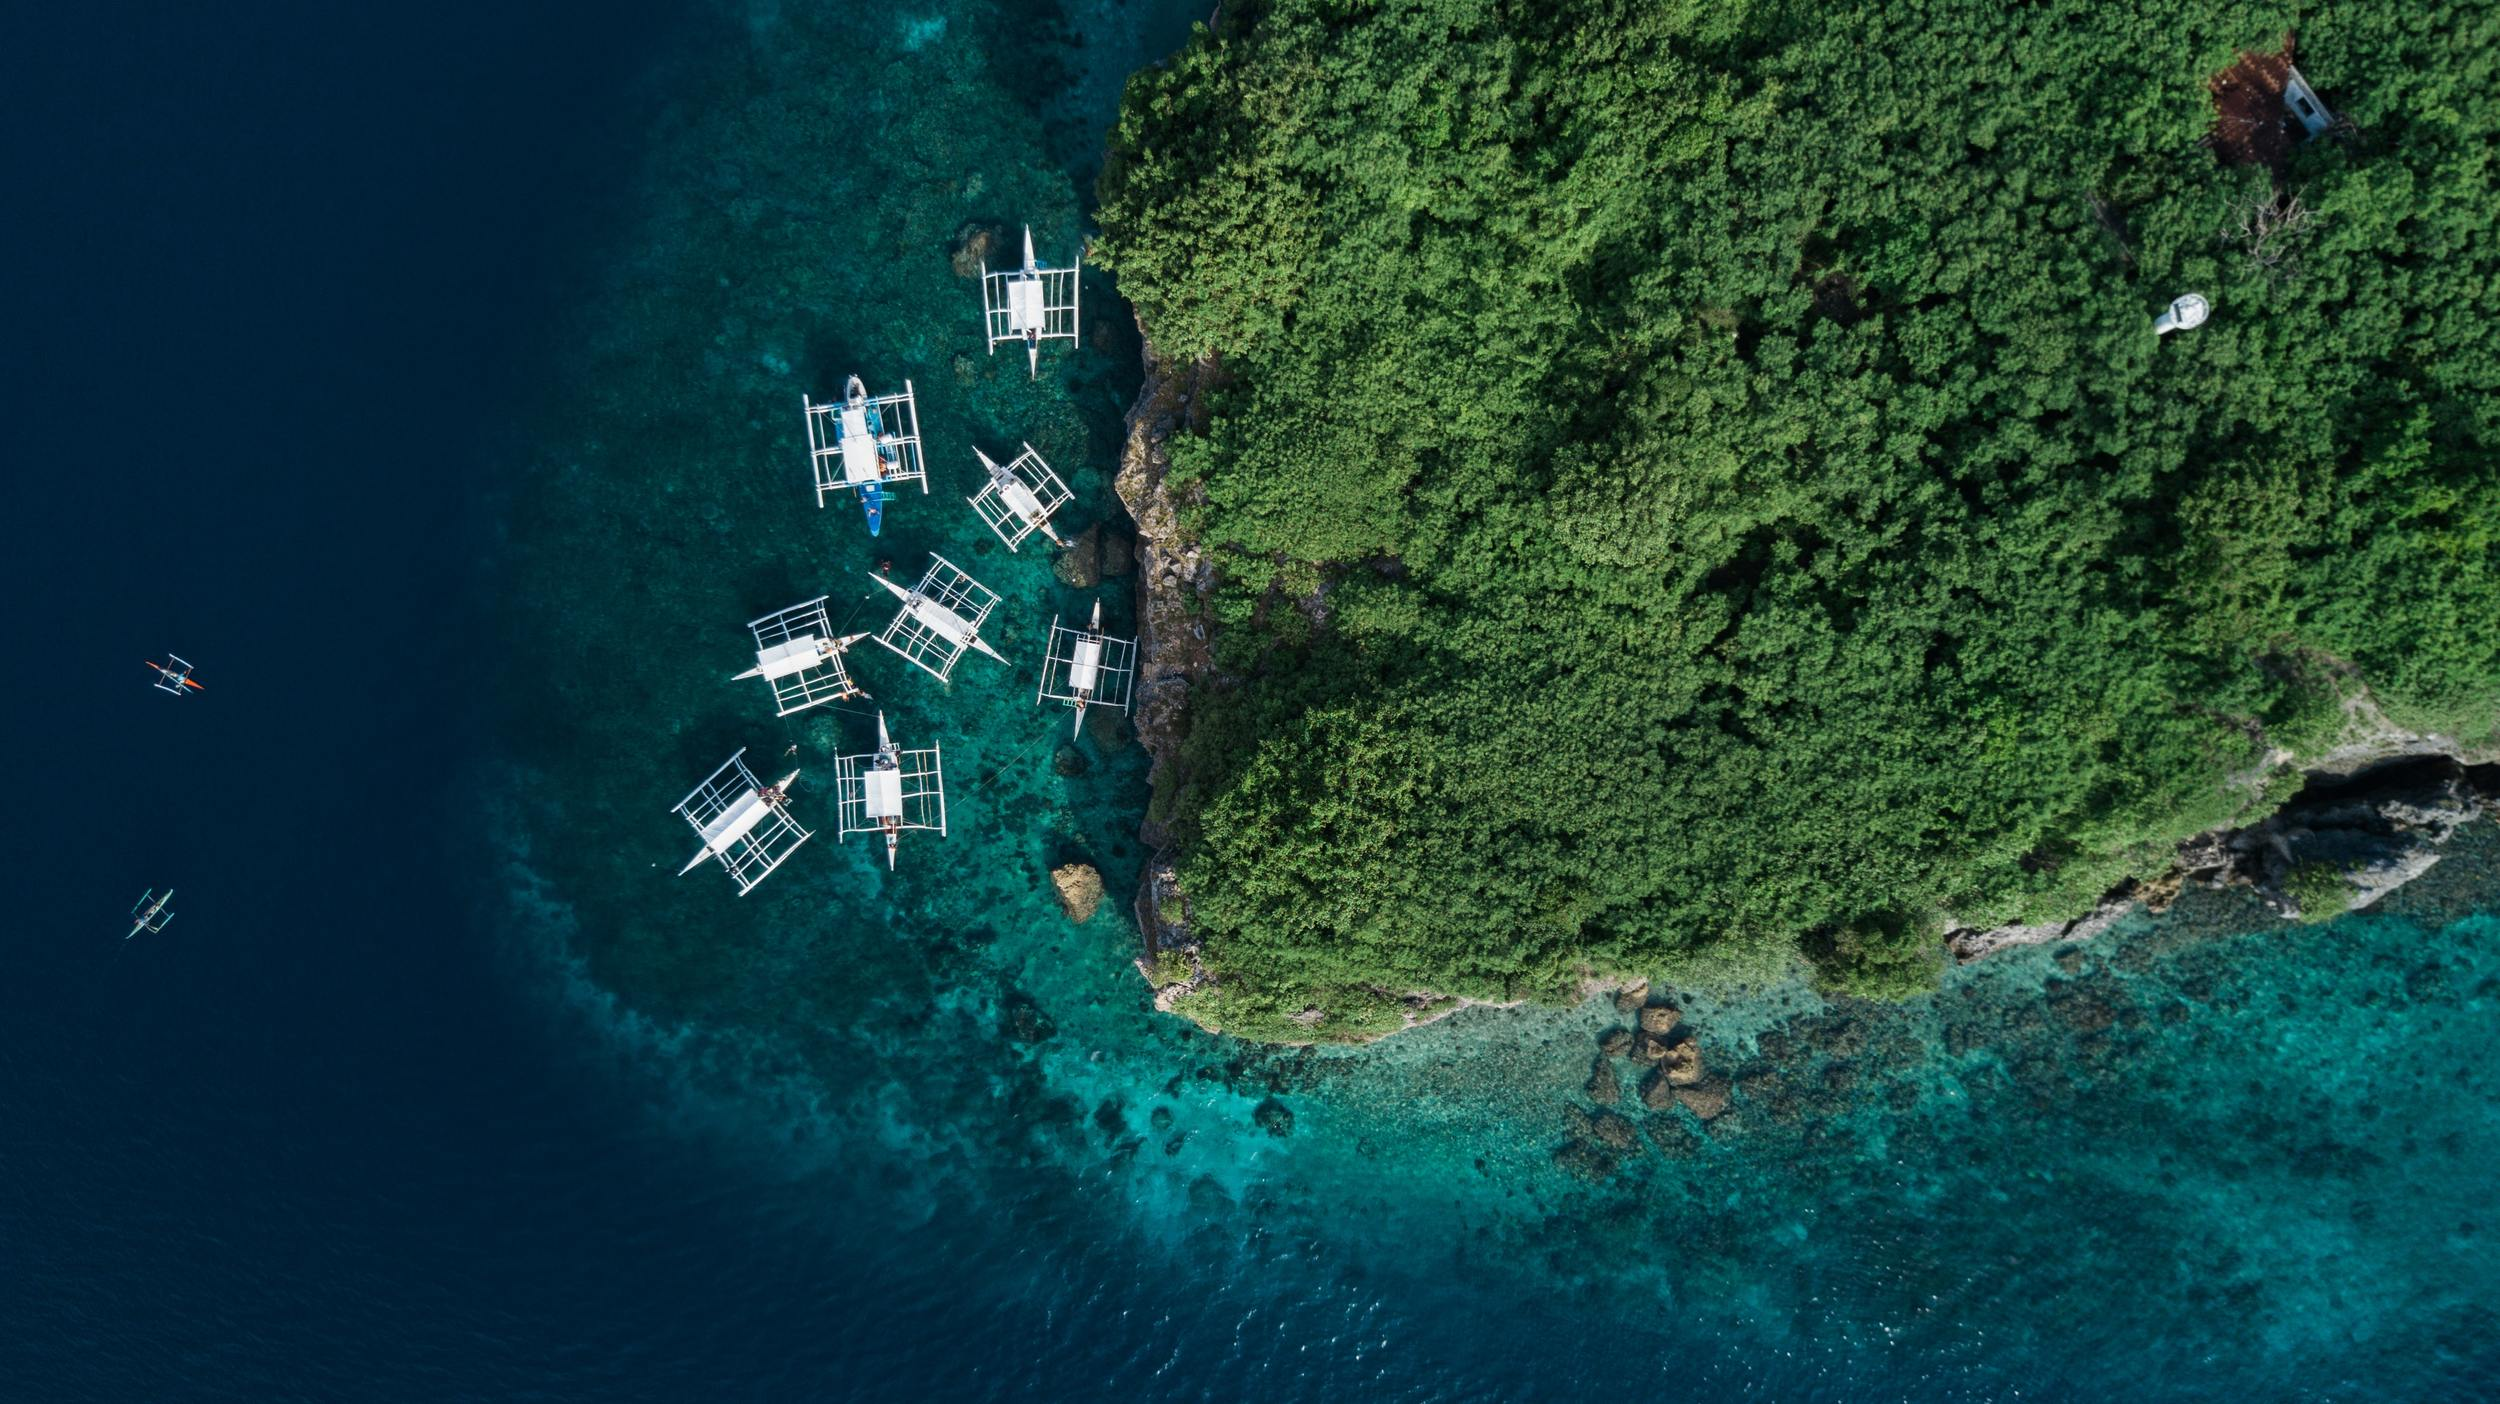 Best Islands for Beach Hopping in the Philippines